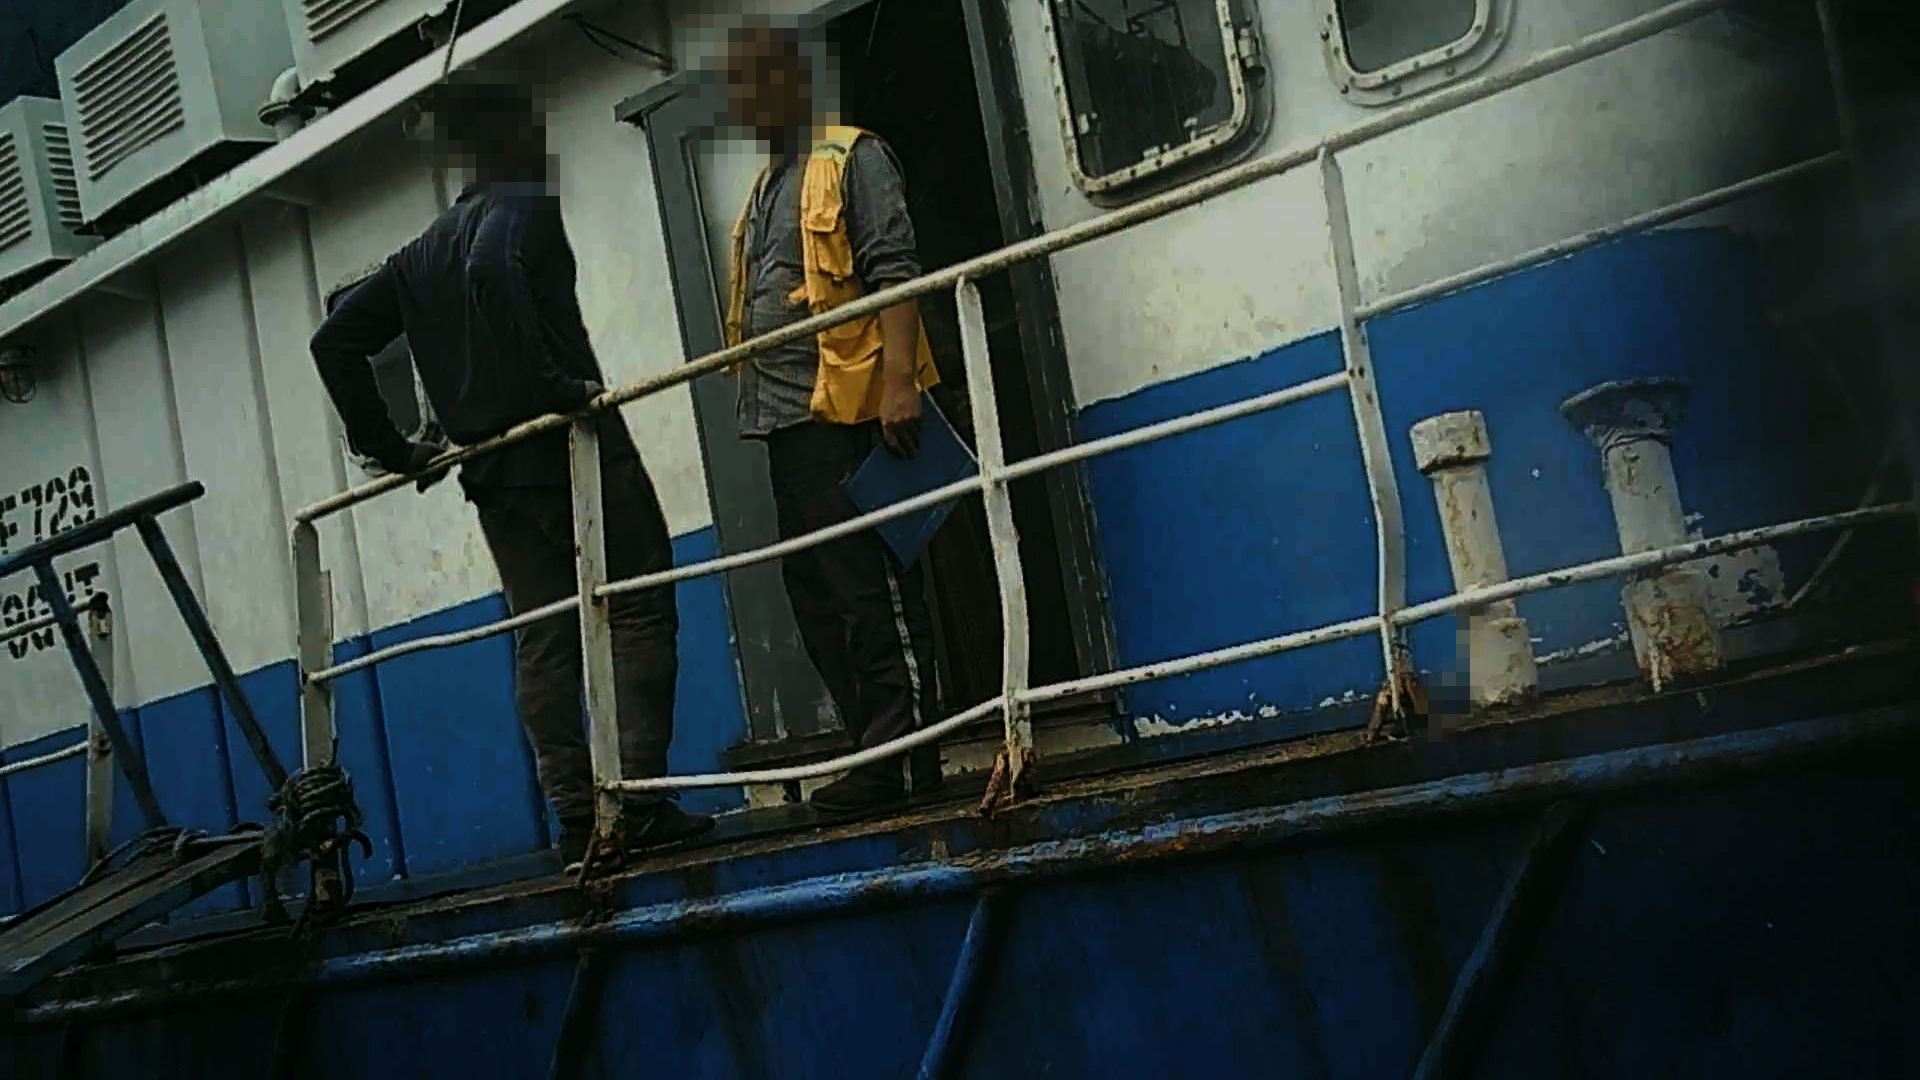 Fisheries observers risk violence on Chinese-owned trawlers fishing in Ghana